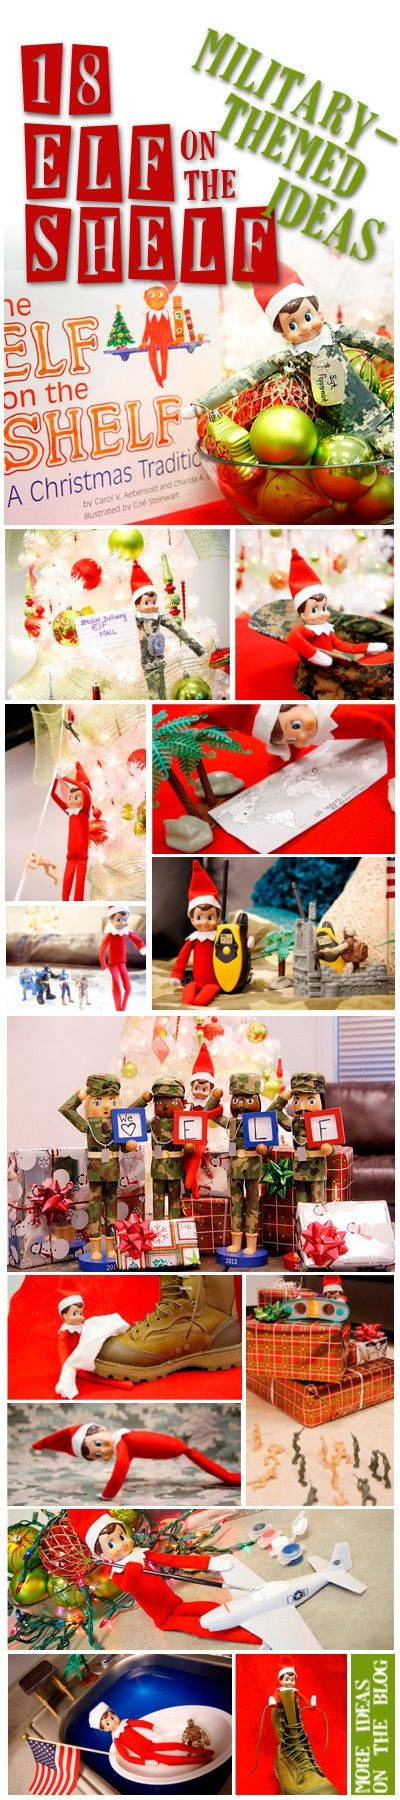 "Elf on the Shelf Visits Military Families too. I just did a ""military operation"" last night, didn't even see this till just now!"